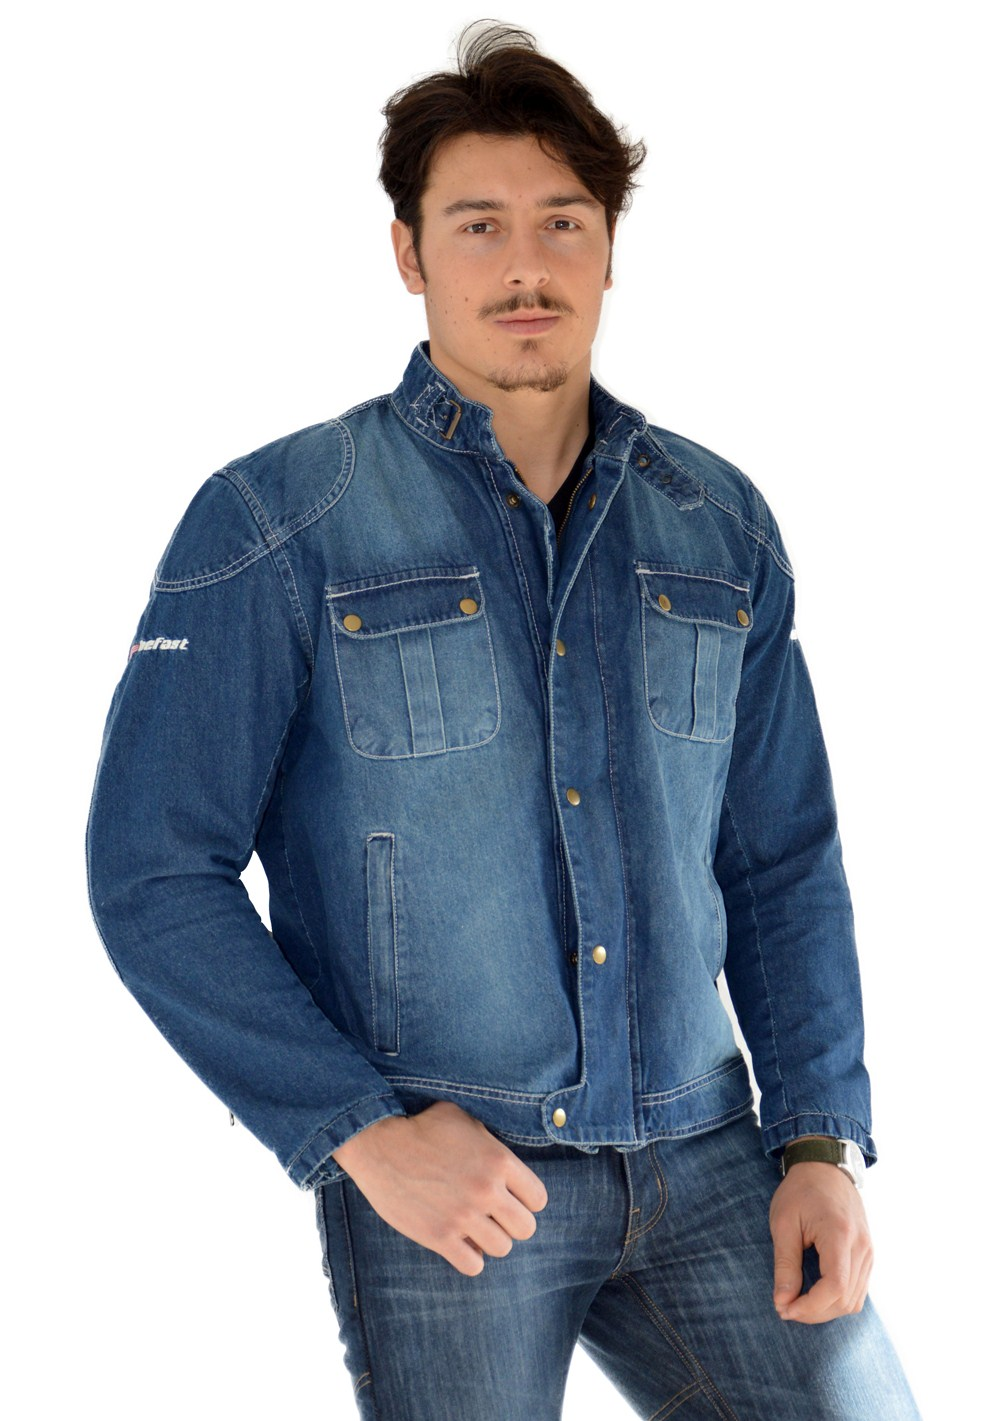 Giacca moto jeans estiva Befast James